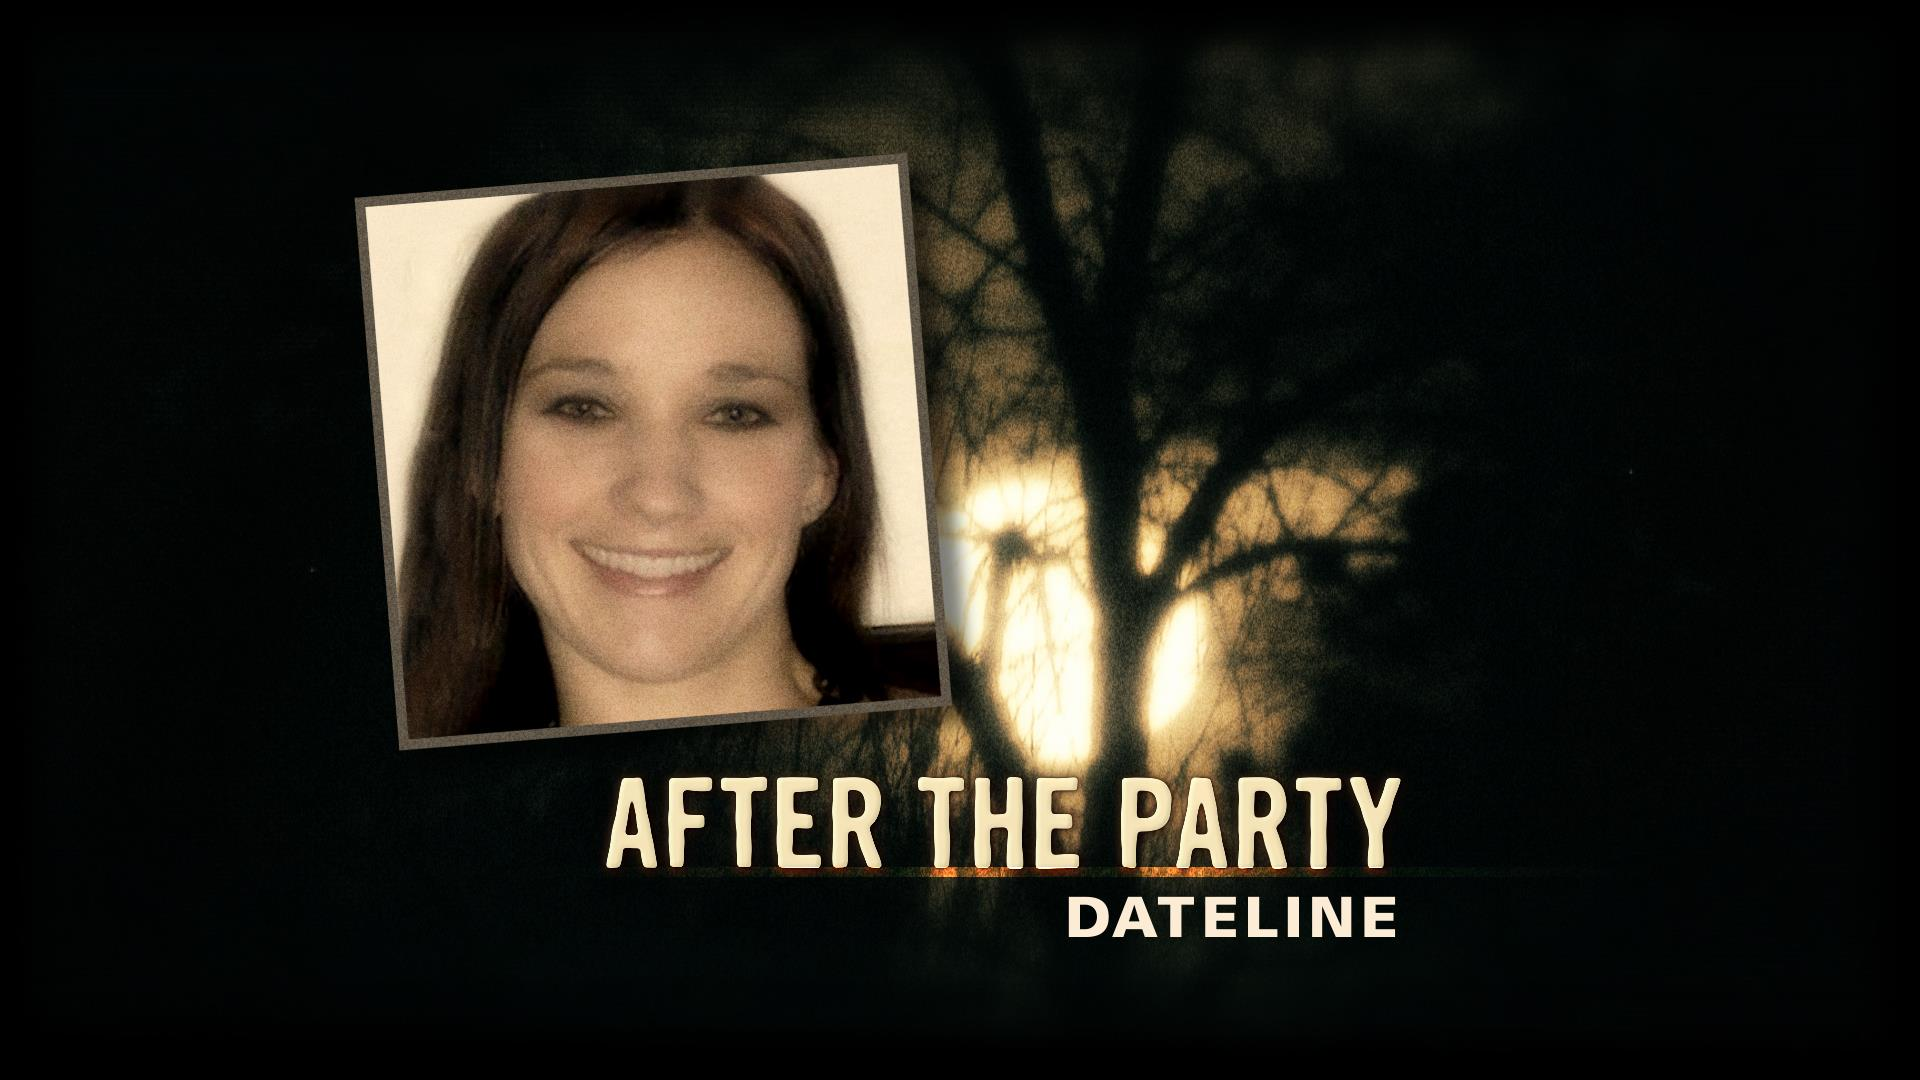 Dateline Trailer: After the Party